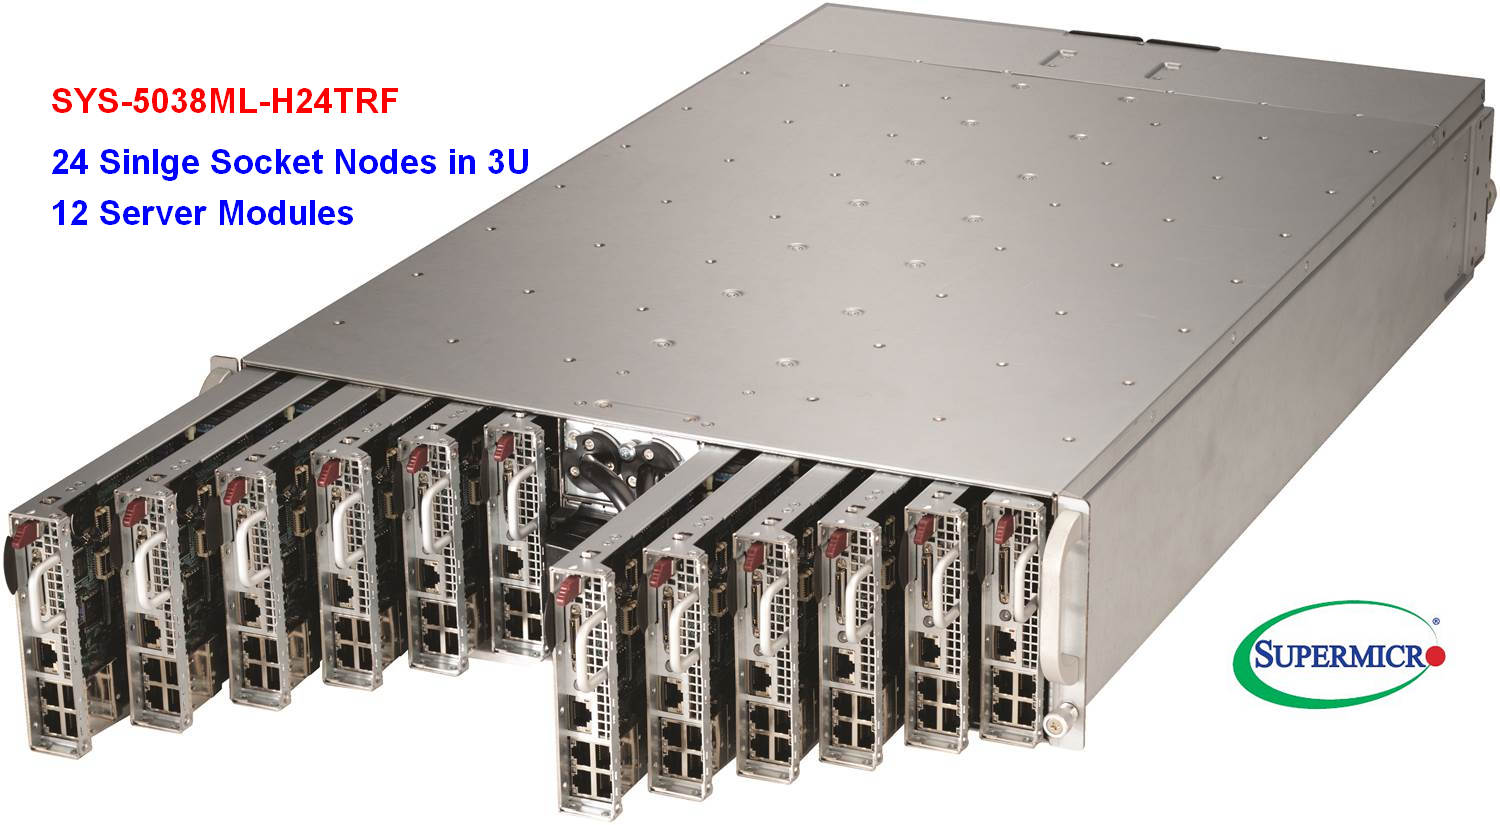 Supermicro SYS-5038ML-H24TRF Microcloud